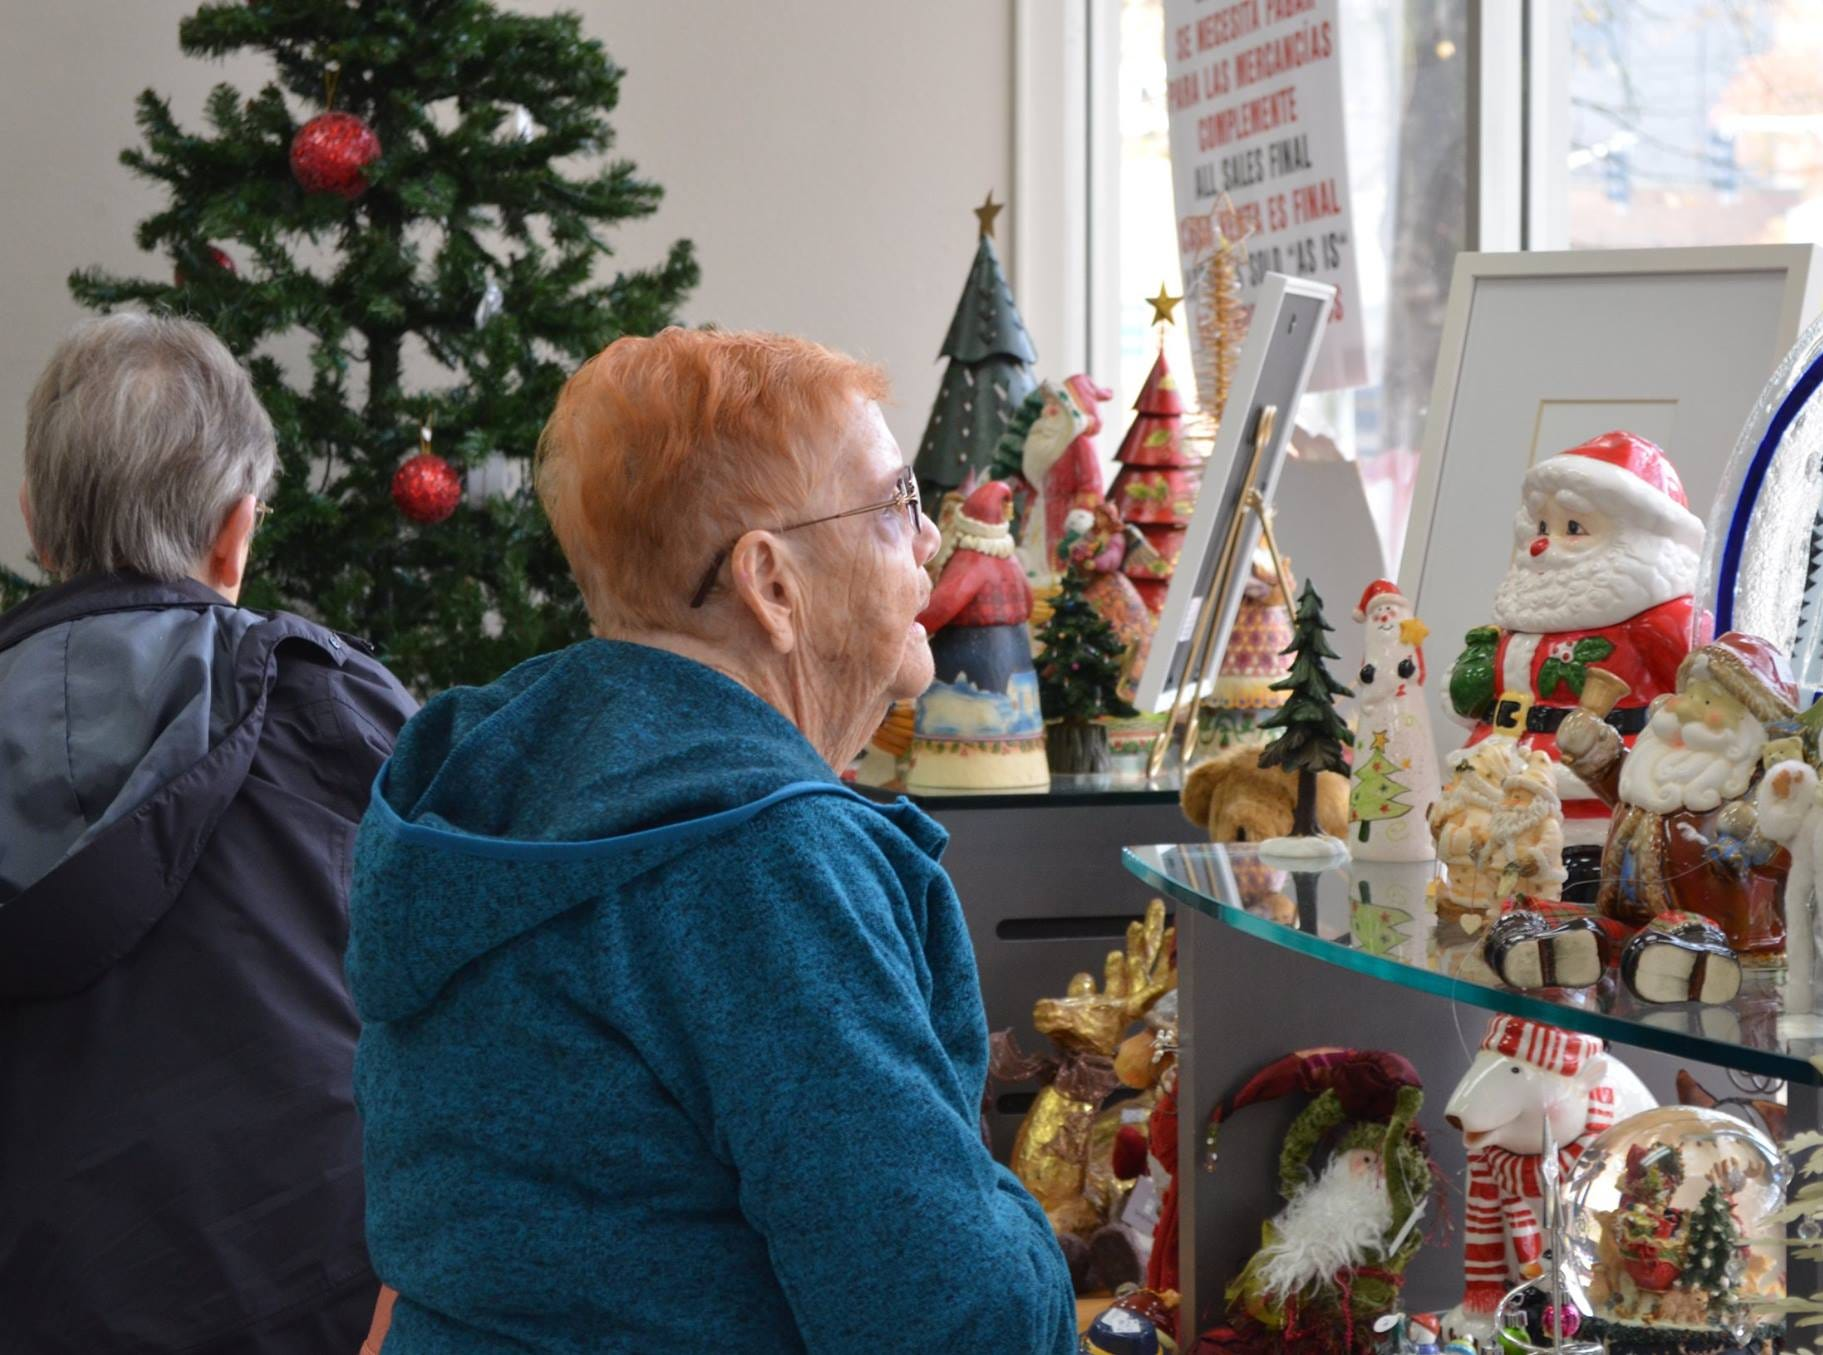 WHS Holiday Bazaar 2018: Shop forgifts, vintage items, holiday goods, clothing, accessories, jewelry, decor andhome goods while also supporting local pets at Willamette Humane Society, 10:30 a.m. to 6 p.m. Friday to Saturday, Nov. 9-10,Willamette Humane Society Thrift Store, 548 High St. NE, Salem.